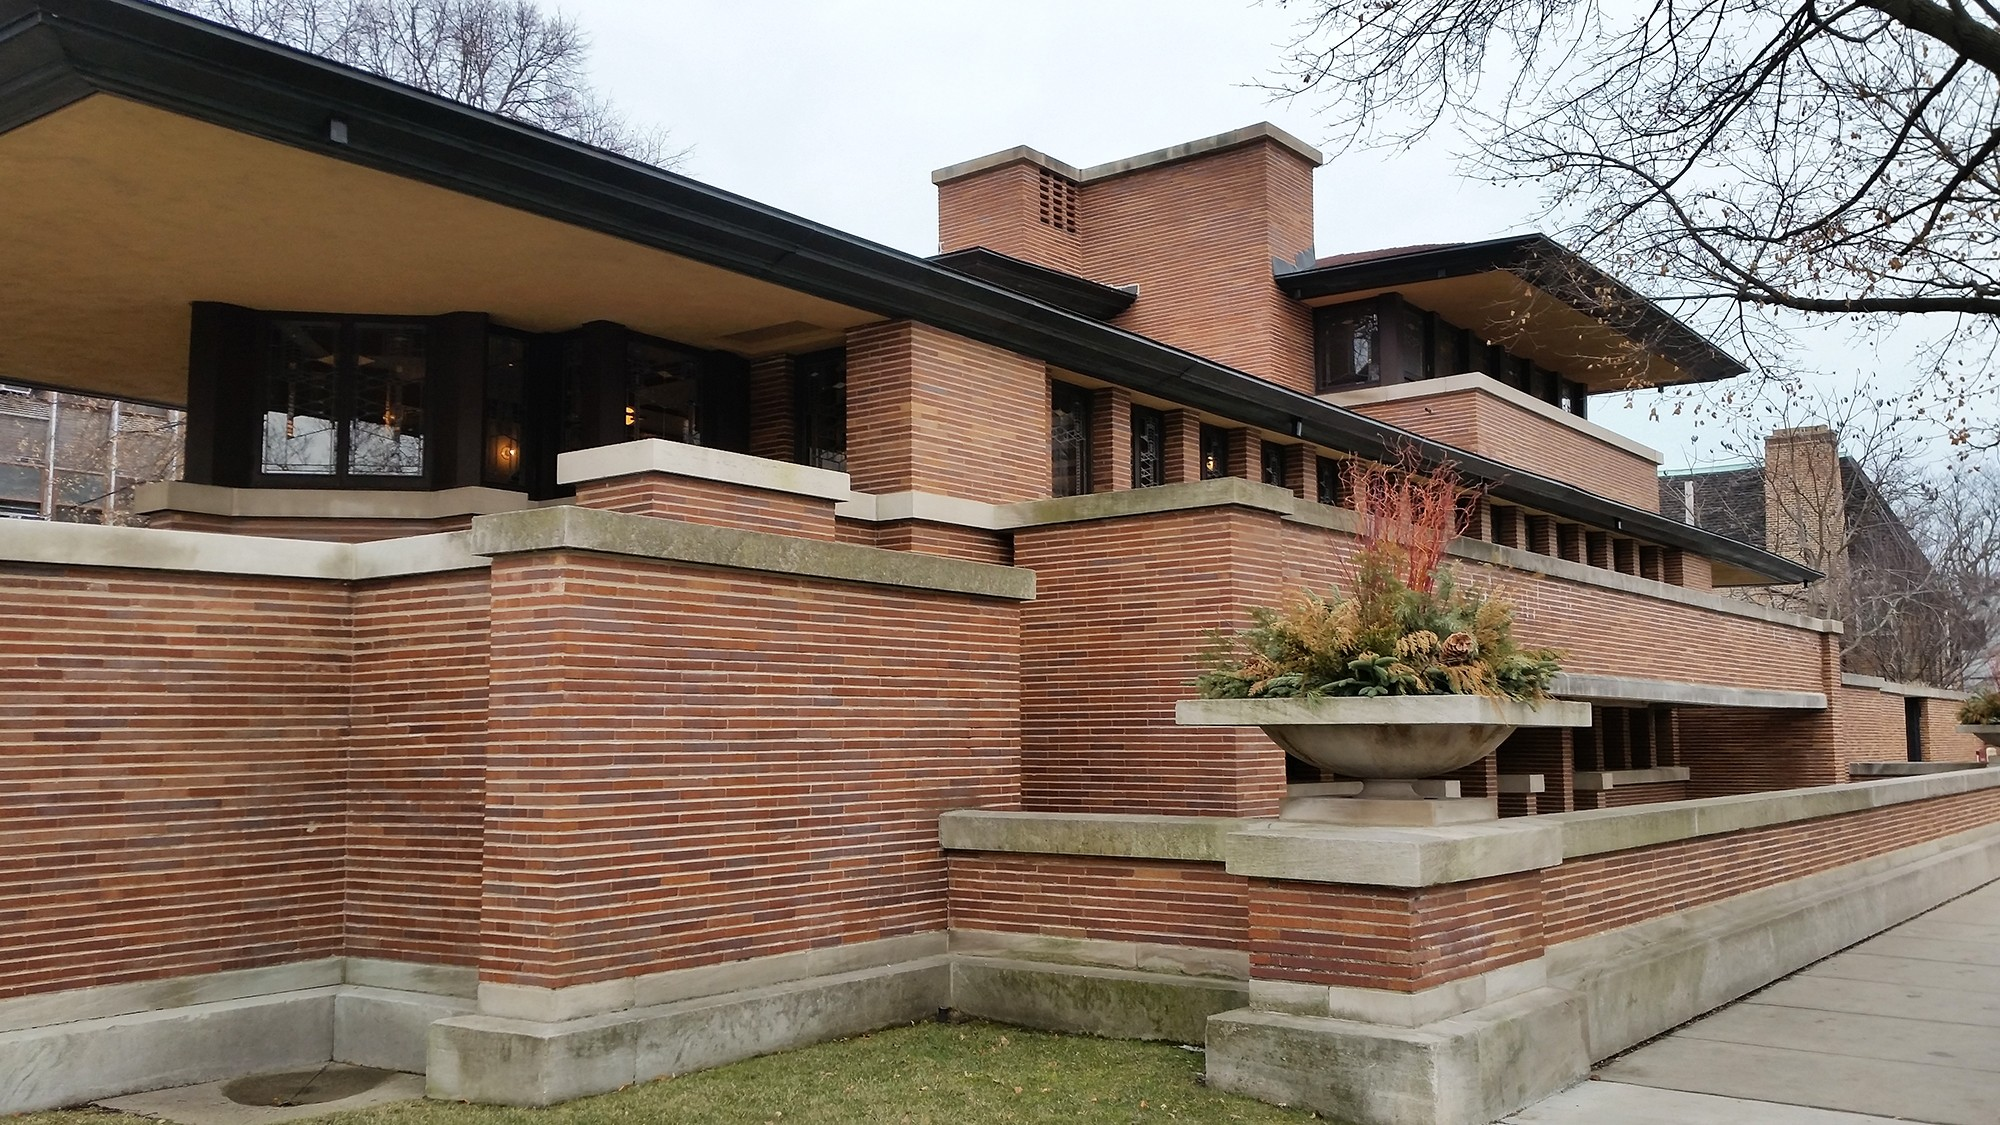 Frank Lloyd Wright Style Frederick C Robie House 183 Sites 183 Open House Chicago